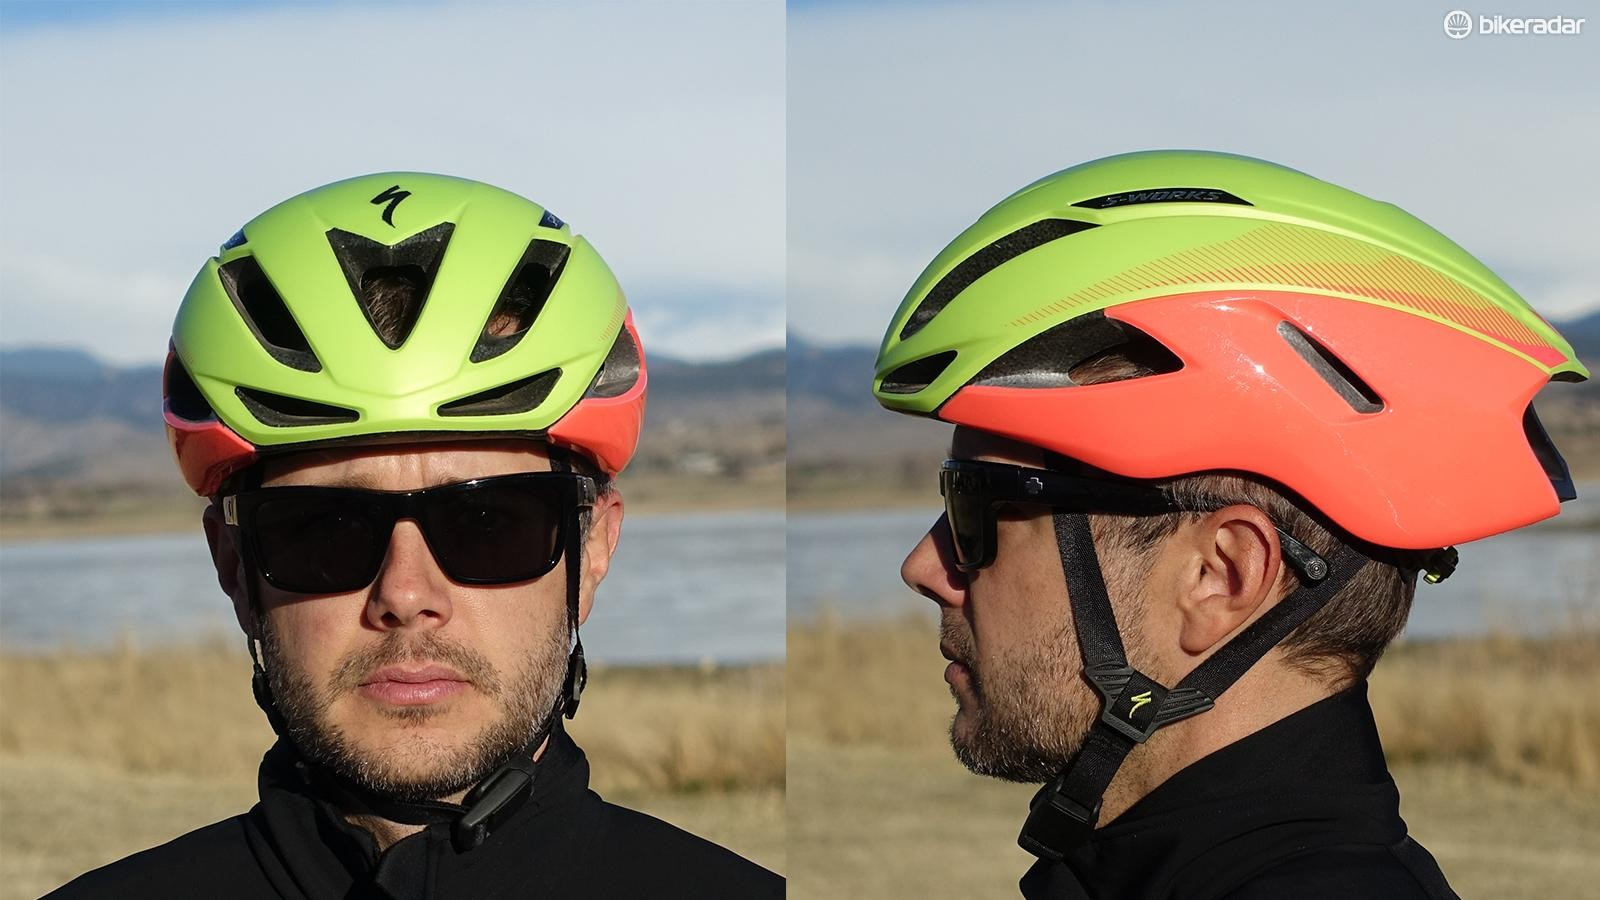 The Evade revamp won the day with a perfect balance of weight, ventilation, looks, price and comfort. While it doesn't feature a MIPS liner, it performs perfectly as an everyday helmet